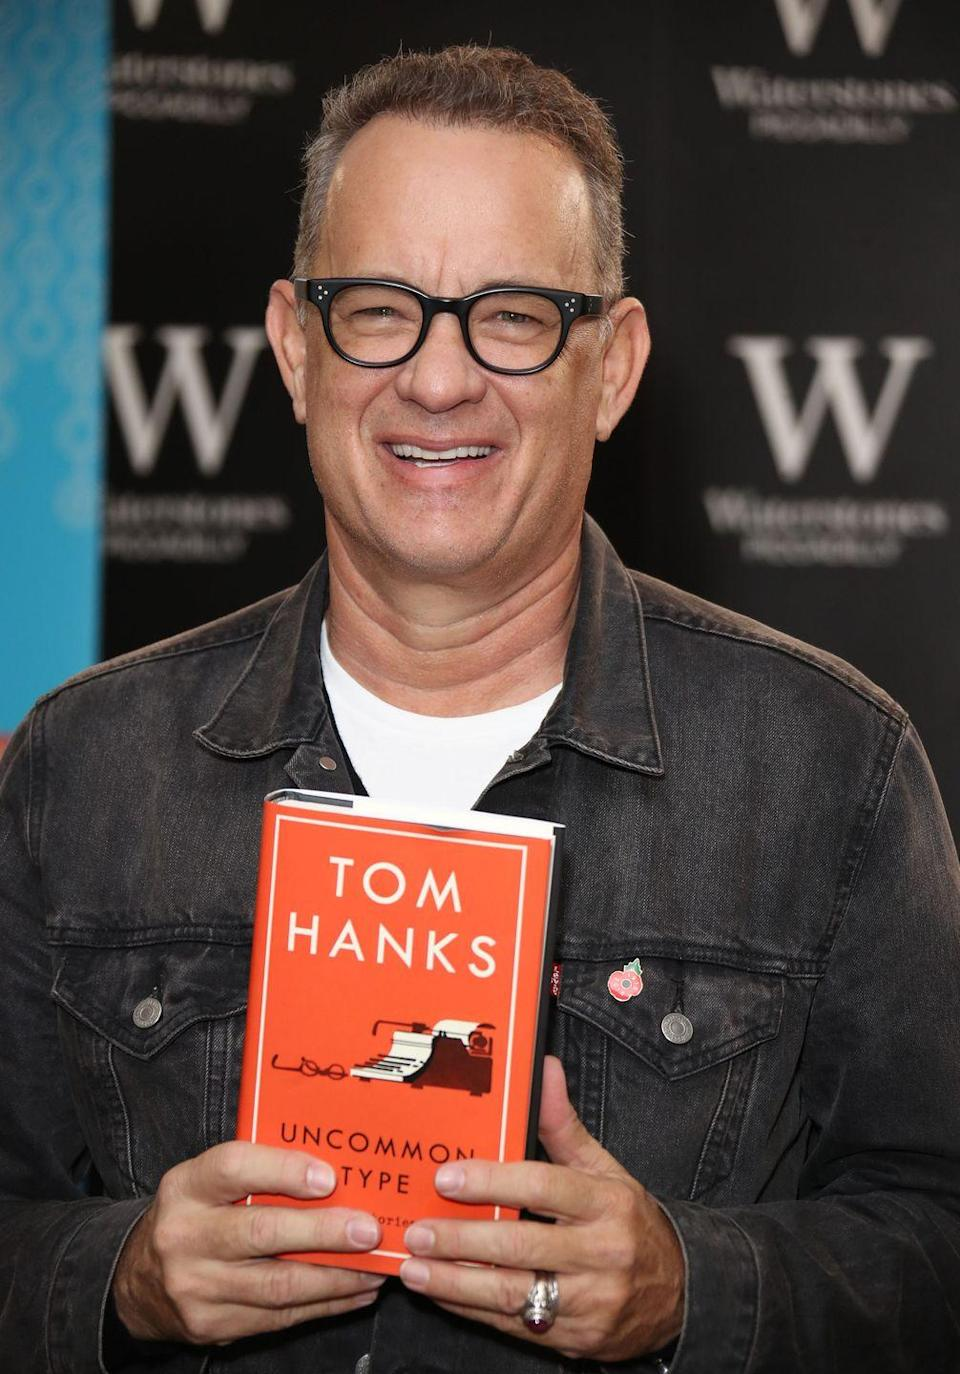 """<p>When you're Tom Hanks learning from acclaimed screenwriter Nora Ephron, it's the best learning from the best.</p><p>The Academy Award winner told <a href=""""https://www.wbur.org/onpoint/2018/11/23/tom-hanks-movies-uncommon-type"""" rel=""""nofollow noopener"""" target=""""_blank"""" data-ylk=""""slk:WBUR"""" class=""""link rapid-noclick-resp"""">WBUR</a> that there was a particular part of the <em>Sleepless in Seattle</em> script that he was """"really cranky about,"""" so he brought it to Nora and fellow screenwriter Delia Ephron (Nora's sister). Before this, Tom had worked on screenplays, but since he wasn't """"coming up with the more detailed bones of structure of a story,"""" he didn't count that as real writing. The <em>Forrest Gump</em> star ended up doing a major rewrite with Nora and Delia, and when the film was released, Nora told him, """"You wrote that.""""</p><p>The rest, as they say, is history. Tom went to release a collection of short stories, <em>Uncommon Type</em>, in 2017.</p><p><a class=""""link rapid-noclick-resp"""" href=""""https://go.redirectingat.com?id=74968X1596630&url=https%3A%2F%2Fwww.gettyimages.com%2Fdetail%2Fnews-photo%2Ftom-hanks-signs-copies-of-his-new-book-uncommon-type-at-news-photo%2F869300482%3Fadppopup%3Dtrue&sref=https%3A%2F%2Fwww.womenshealthmag.com%2Flife%2Fg33987725%2Fcelebrities-who-wrote-fiction-books%2F"""" rel=""""nofollow noopener"""" target=""""_blank"""" data-ylk=""""slk:Buy the Book"""">Buy the Book</a></p>"""